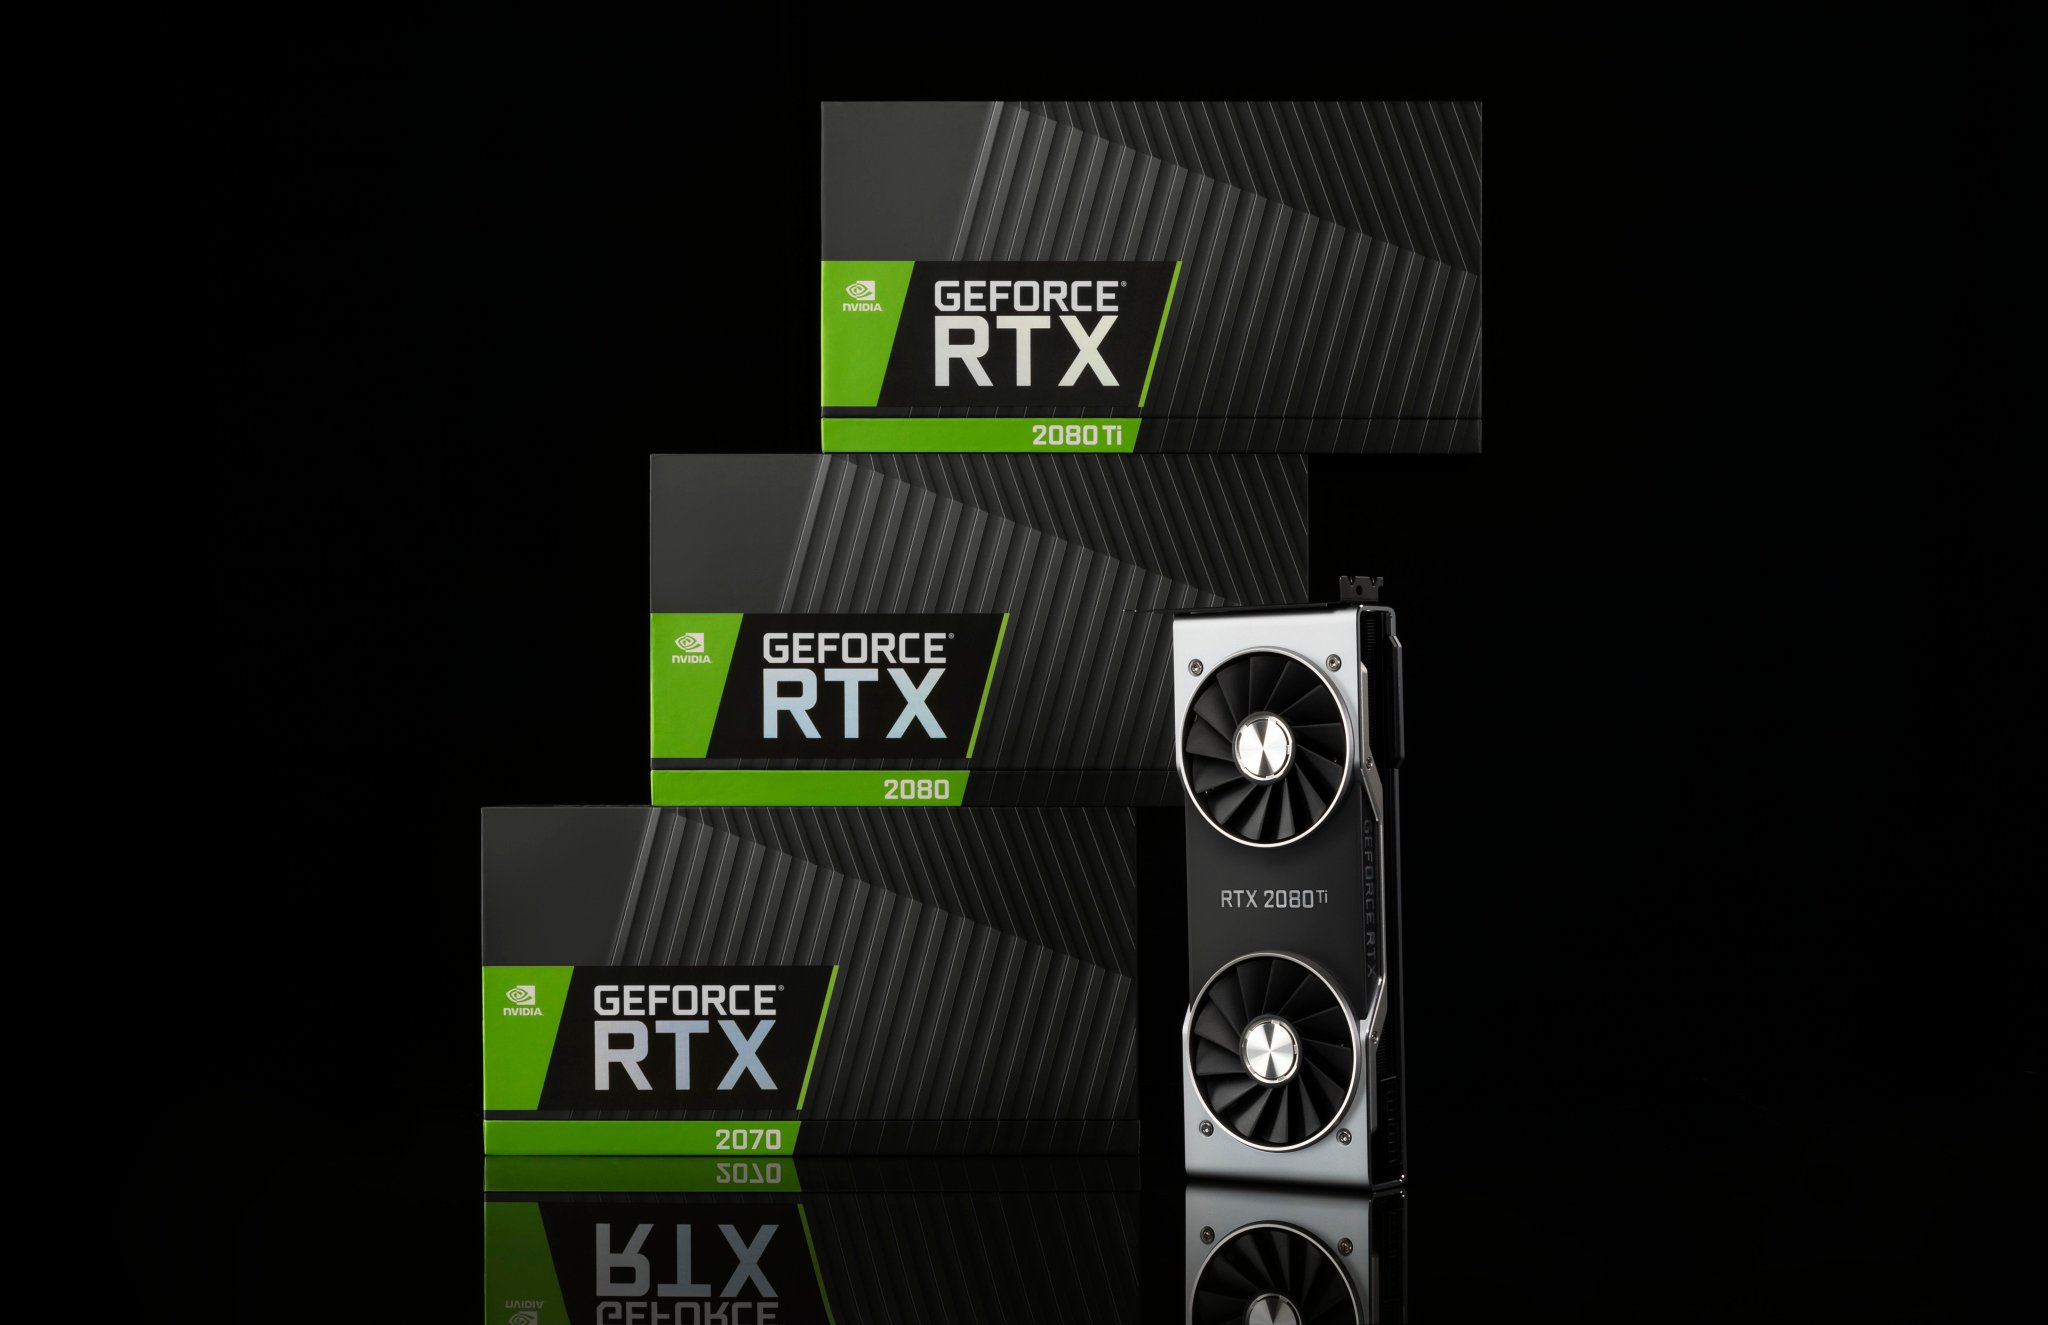 NVIDIA GeForce RTX 20 Series Graphics Cards Get Major Price Drop